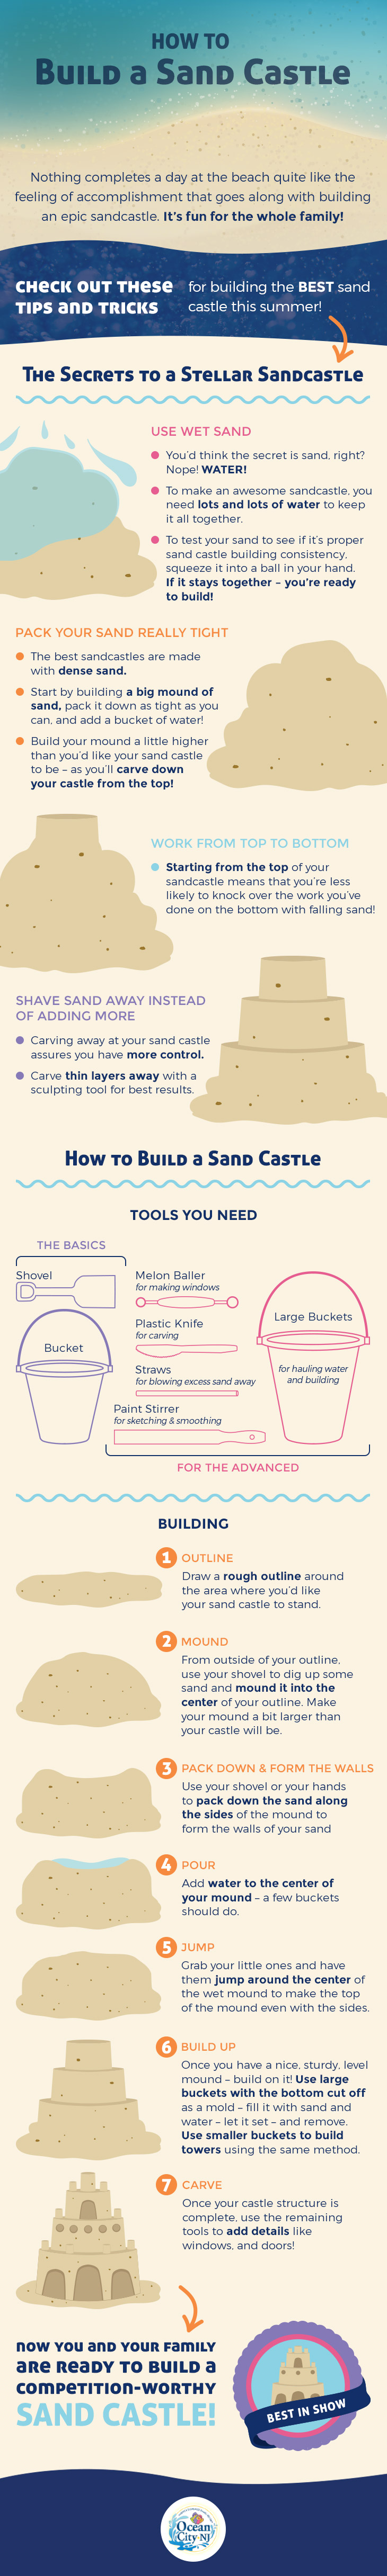 5 steps to building a sandcastle